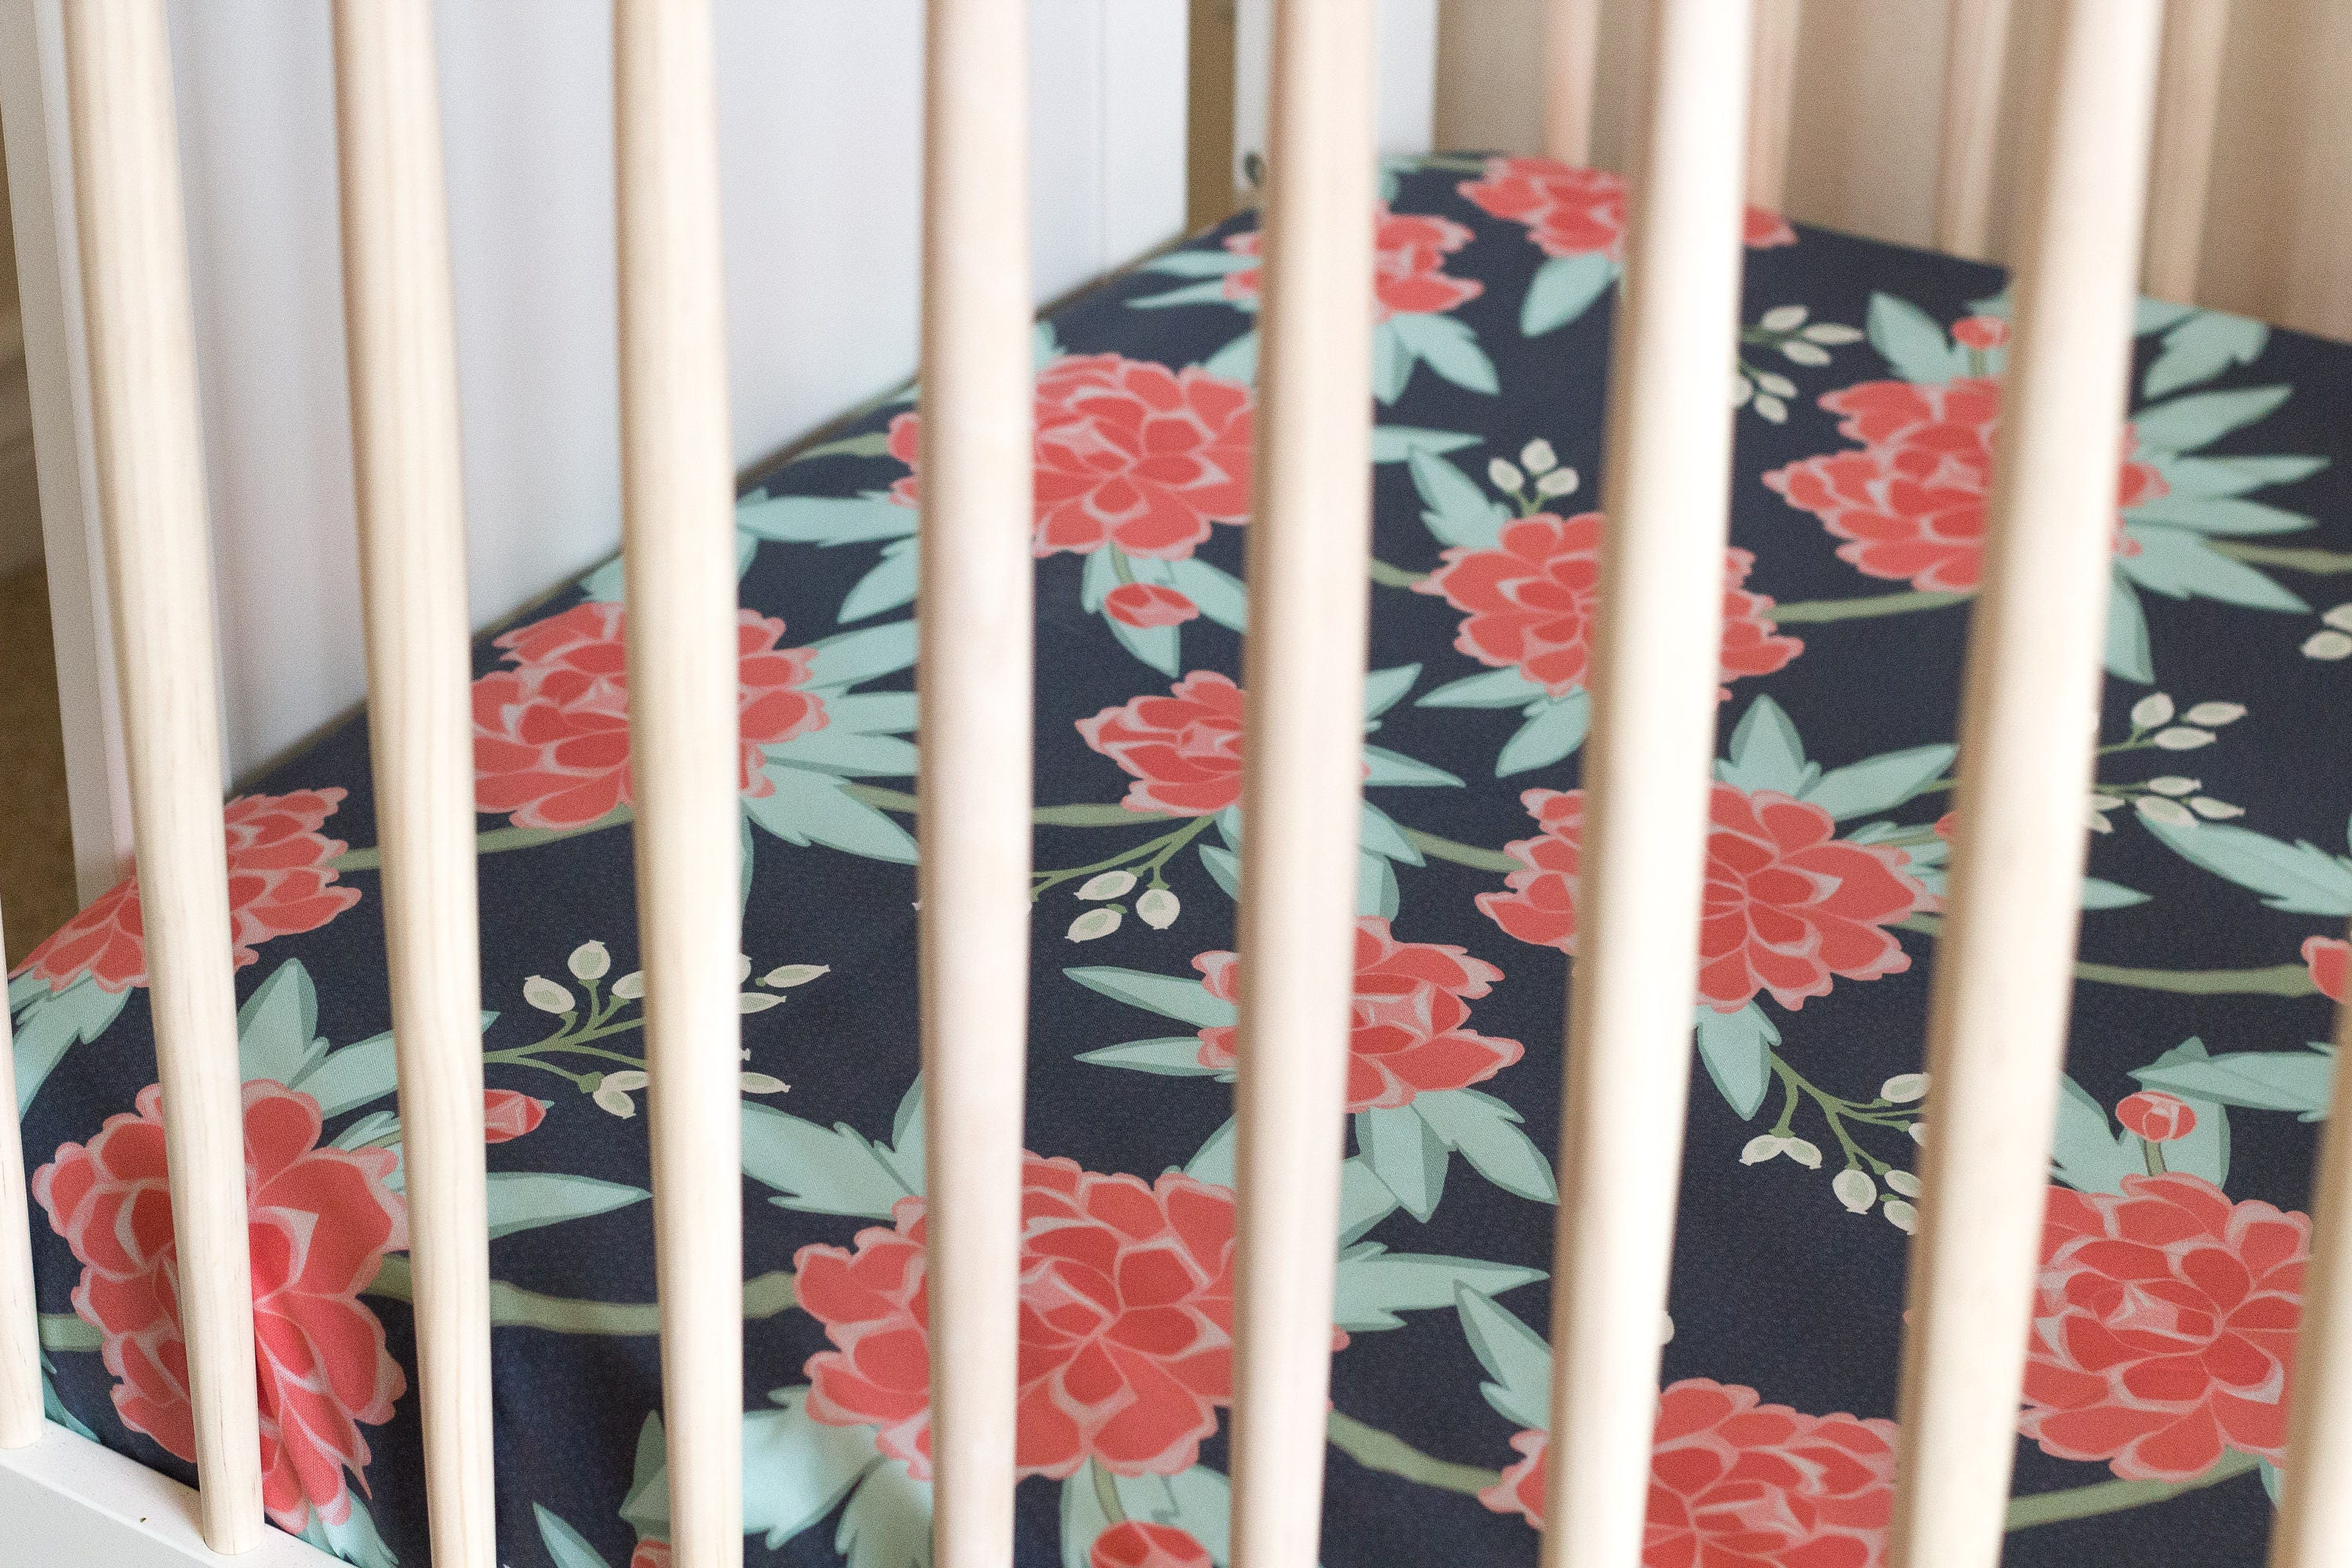 learn sets coral black teal cot tribal exactly burt piece bumper and of infant sheets i honeybee bedding solid size set cribs girl chevron clearance color rabbit boy ter white sheet organic lab fitted print improved baby a bees peter full trend nursery how crib